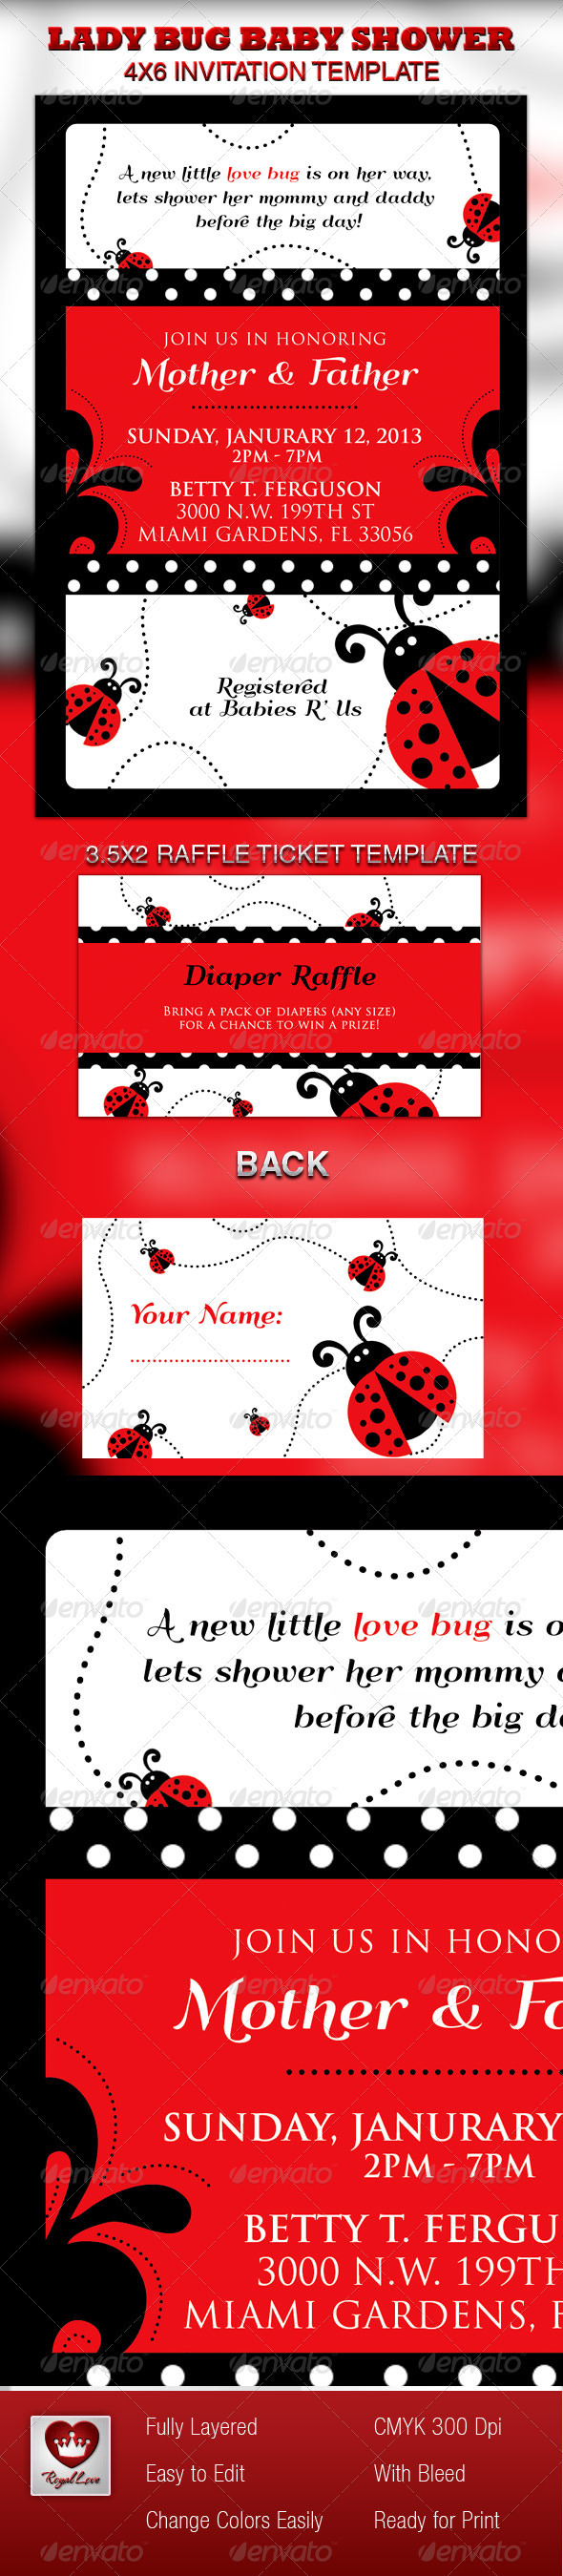 Lady Bug Baby Shower Invitation & Raffle Ticket - Invitations Cards ...